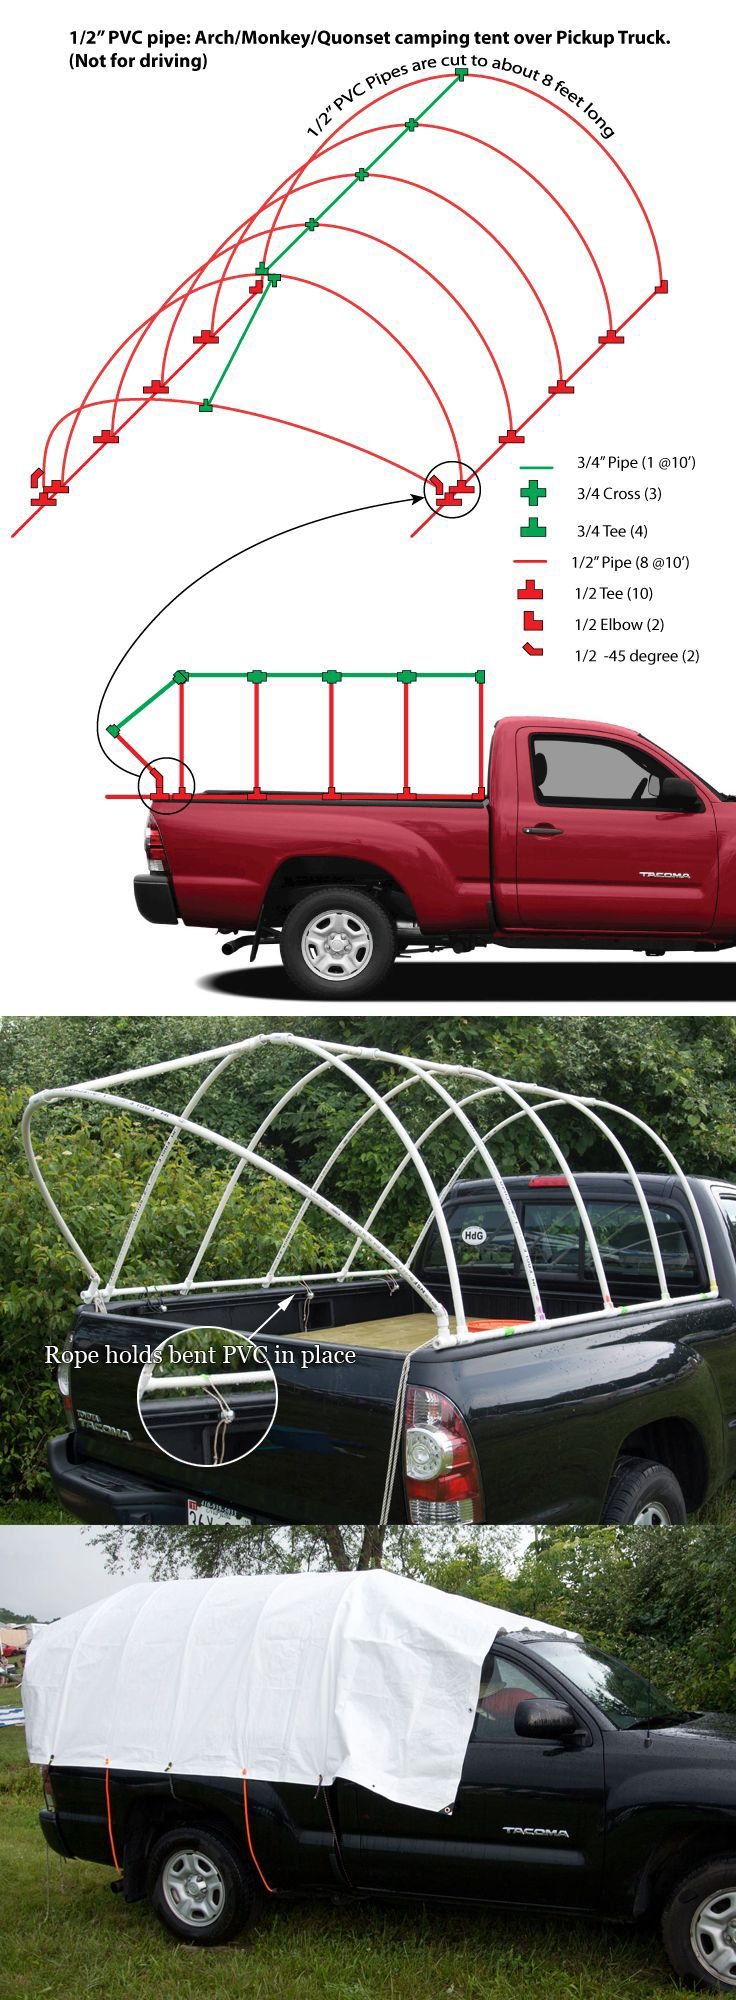 PVC Pipe Truck Tent: Monkey Hut / Quonset Hut DIY camping tent over Pickup Truck. Music Festival ...